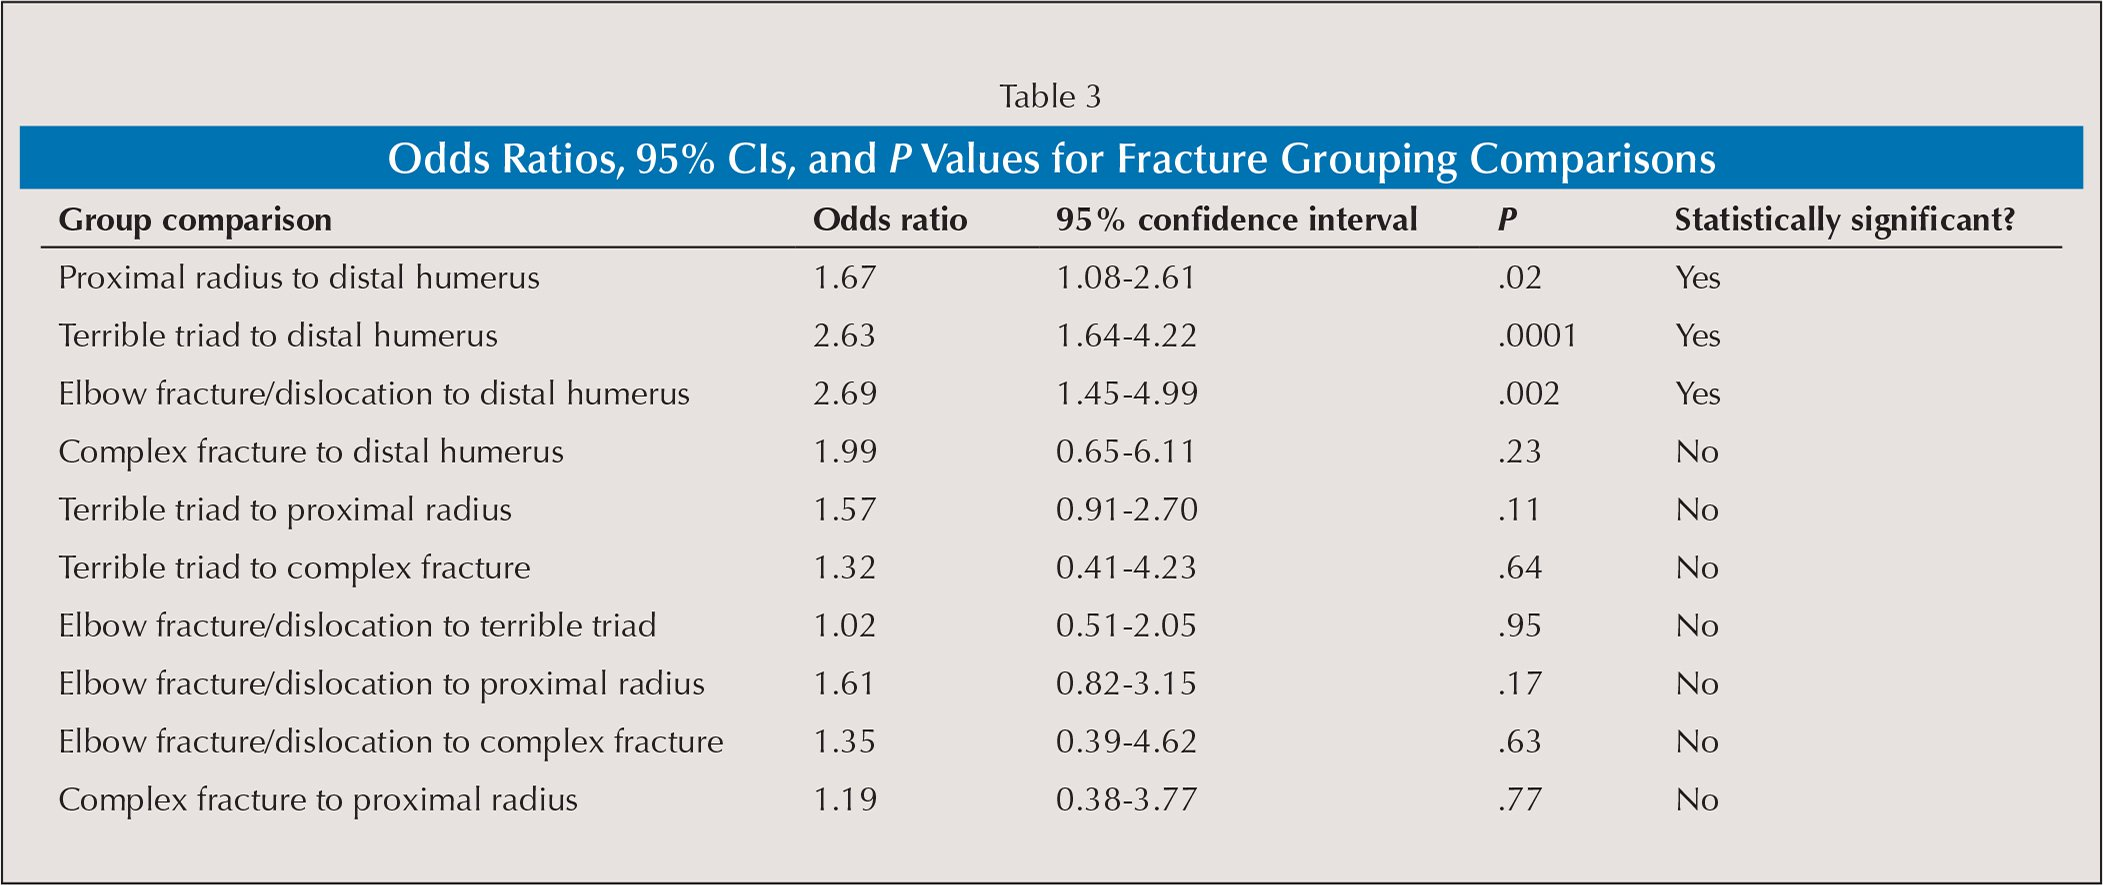 Odds Ratios, 95% CIs, and P Values for Fracture Grouping Comparisons